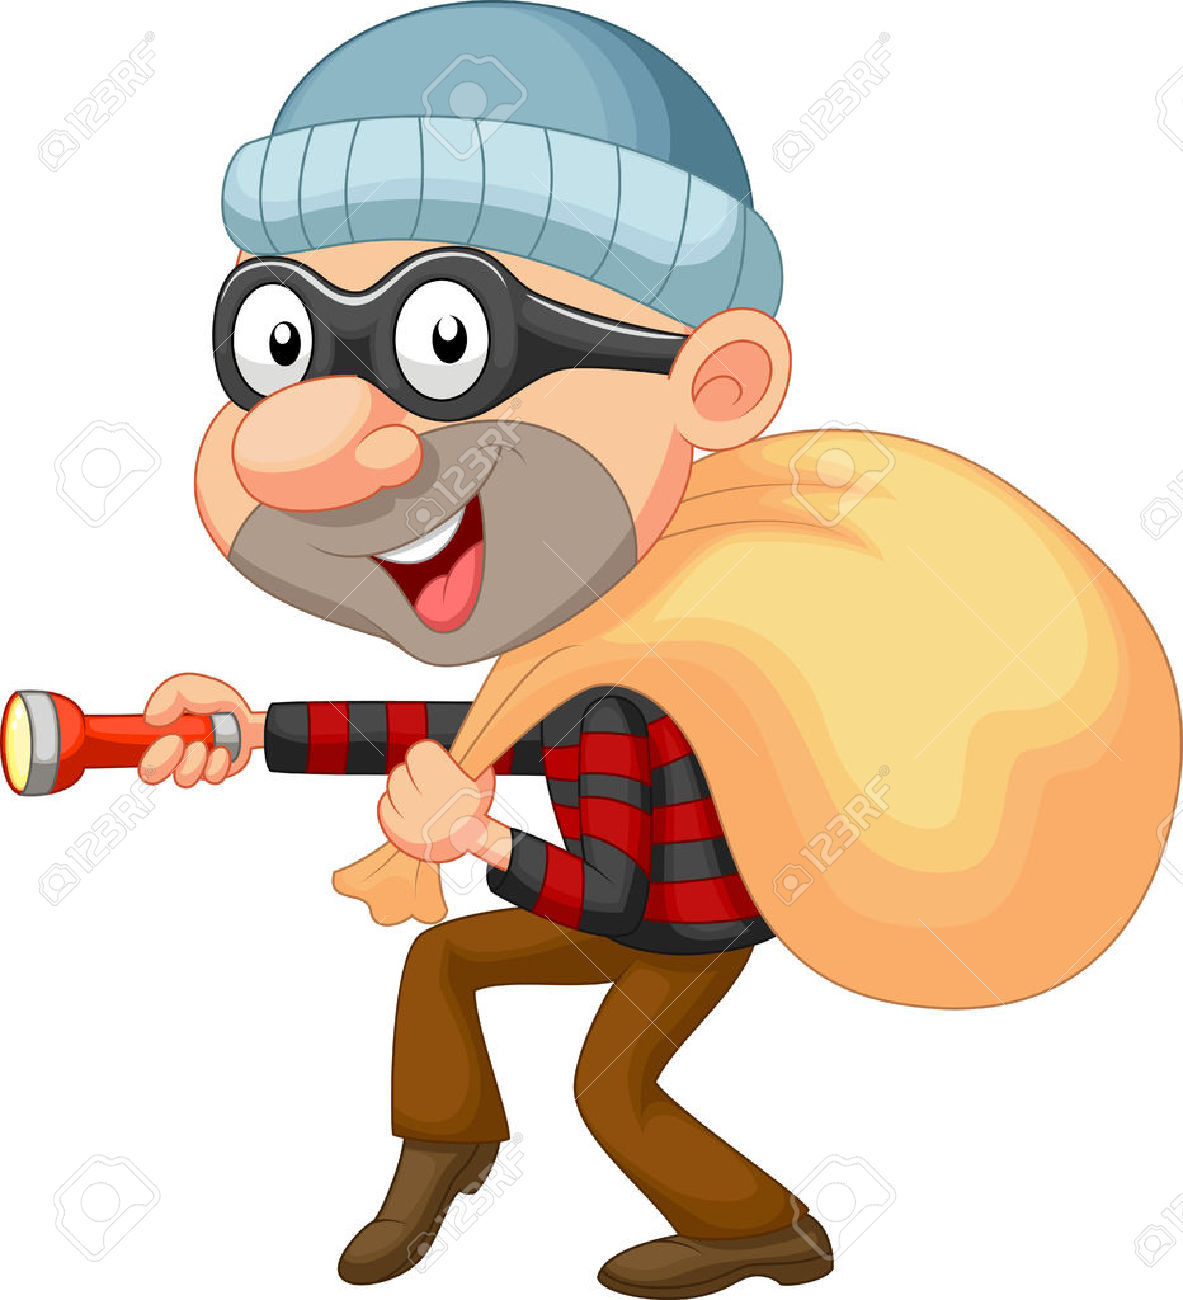 Thief clipart 2 » Clipart Station.